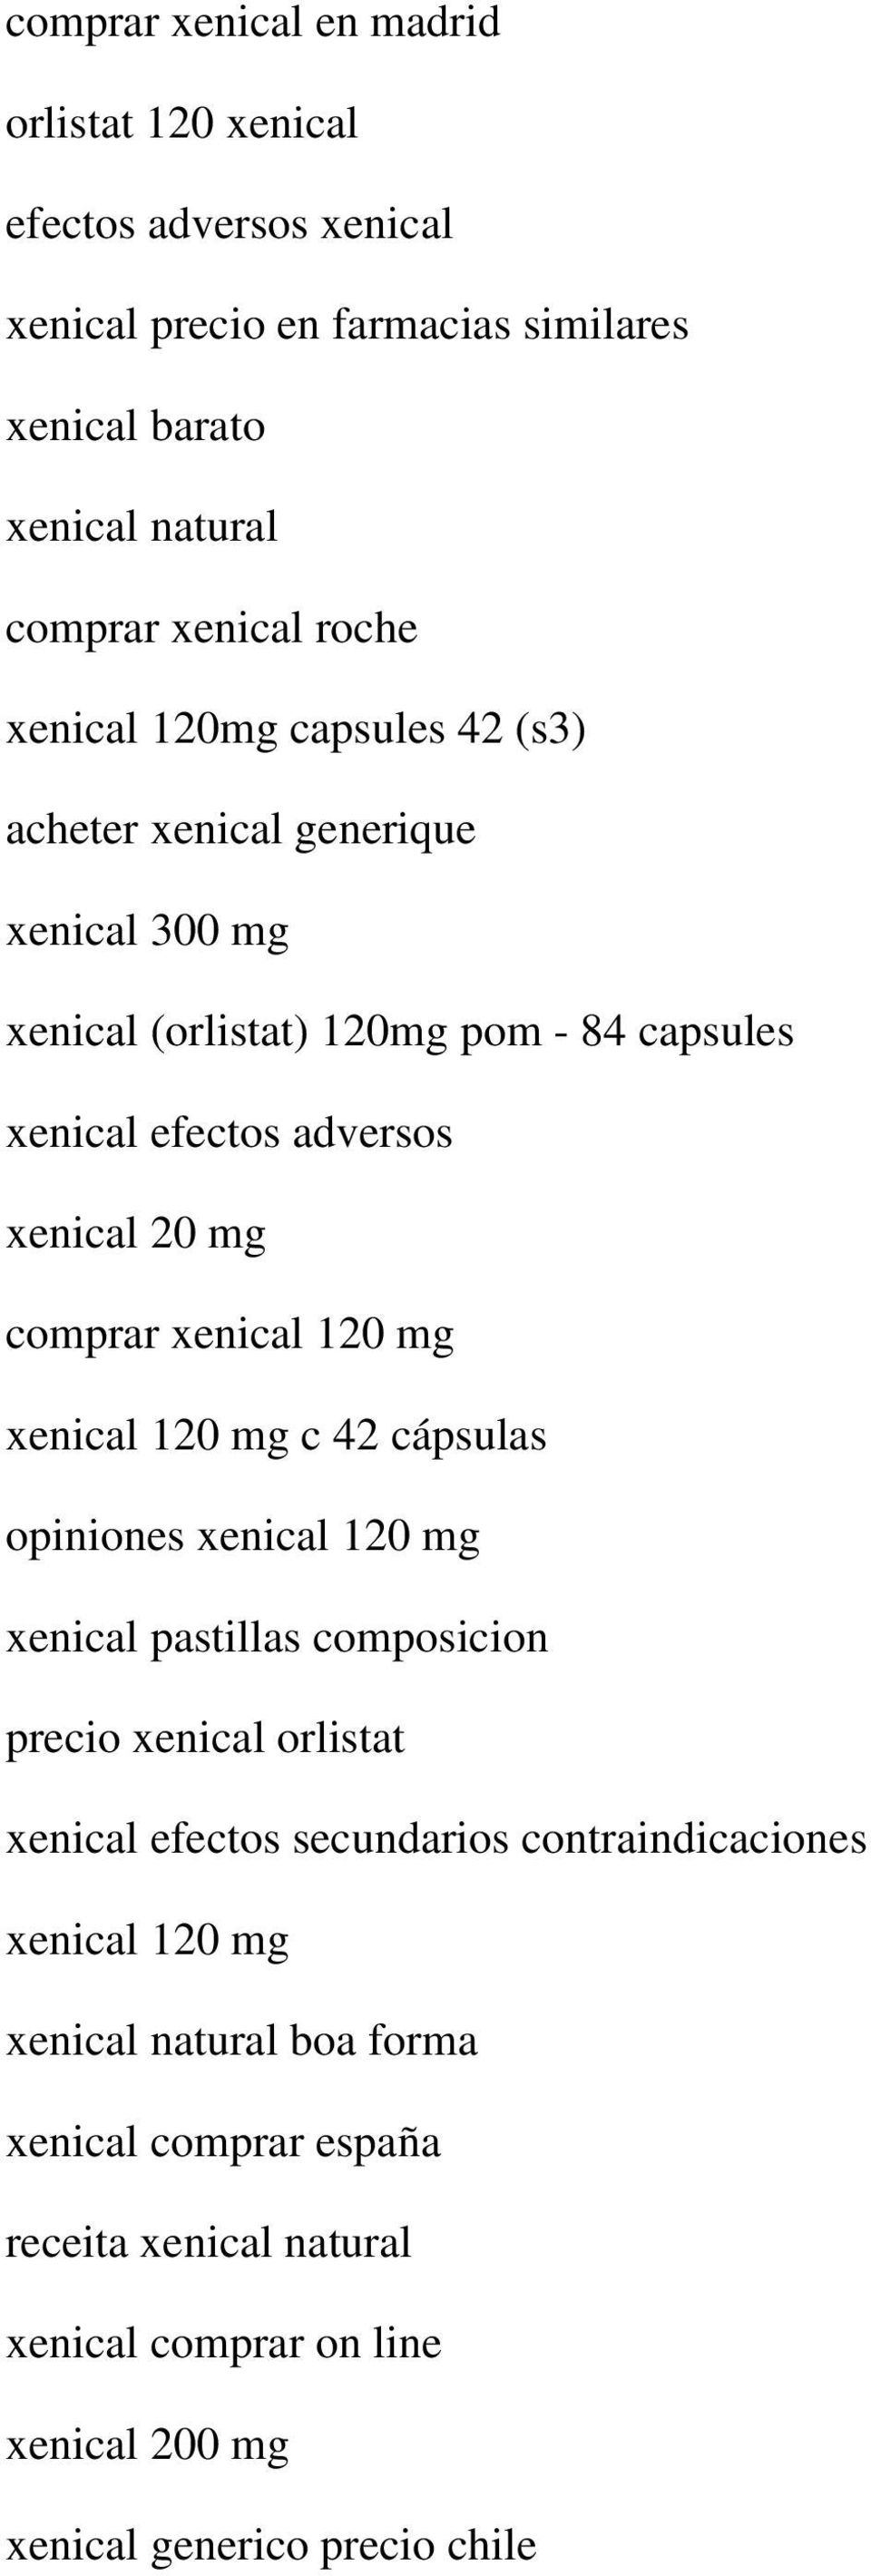 xenical 120 mg xenical 120 mg c 42 cápsulas opiniones xenical 120 mg xenical pastillas composicion precio xenical orlistat xenical efectos secundarios